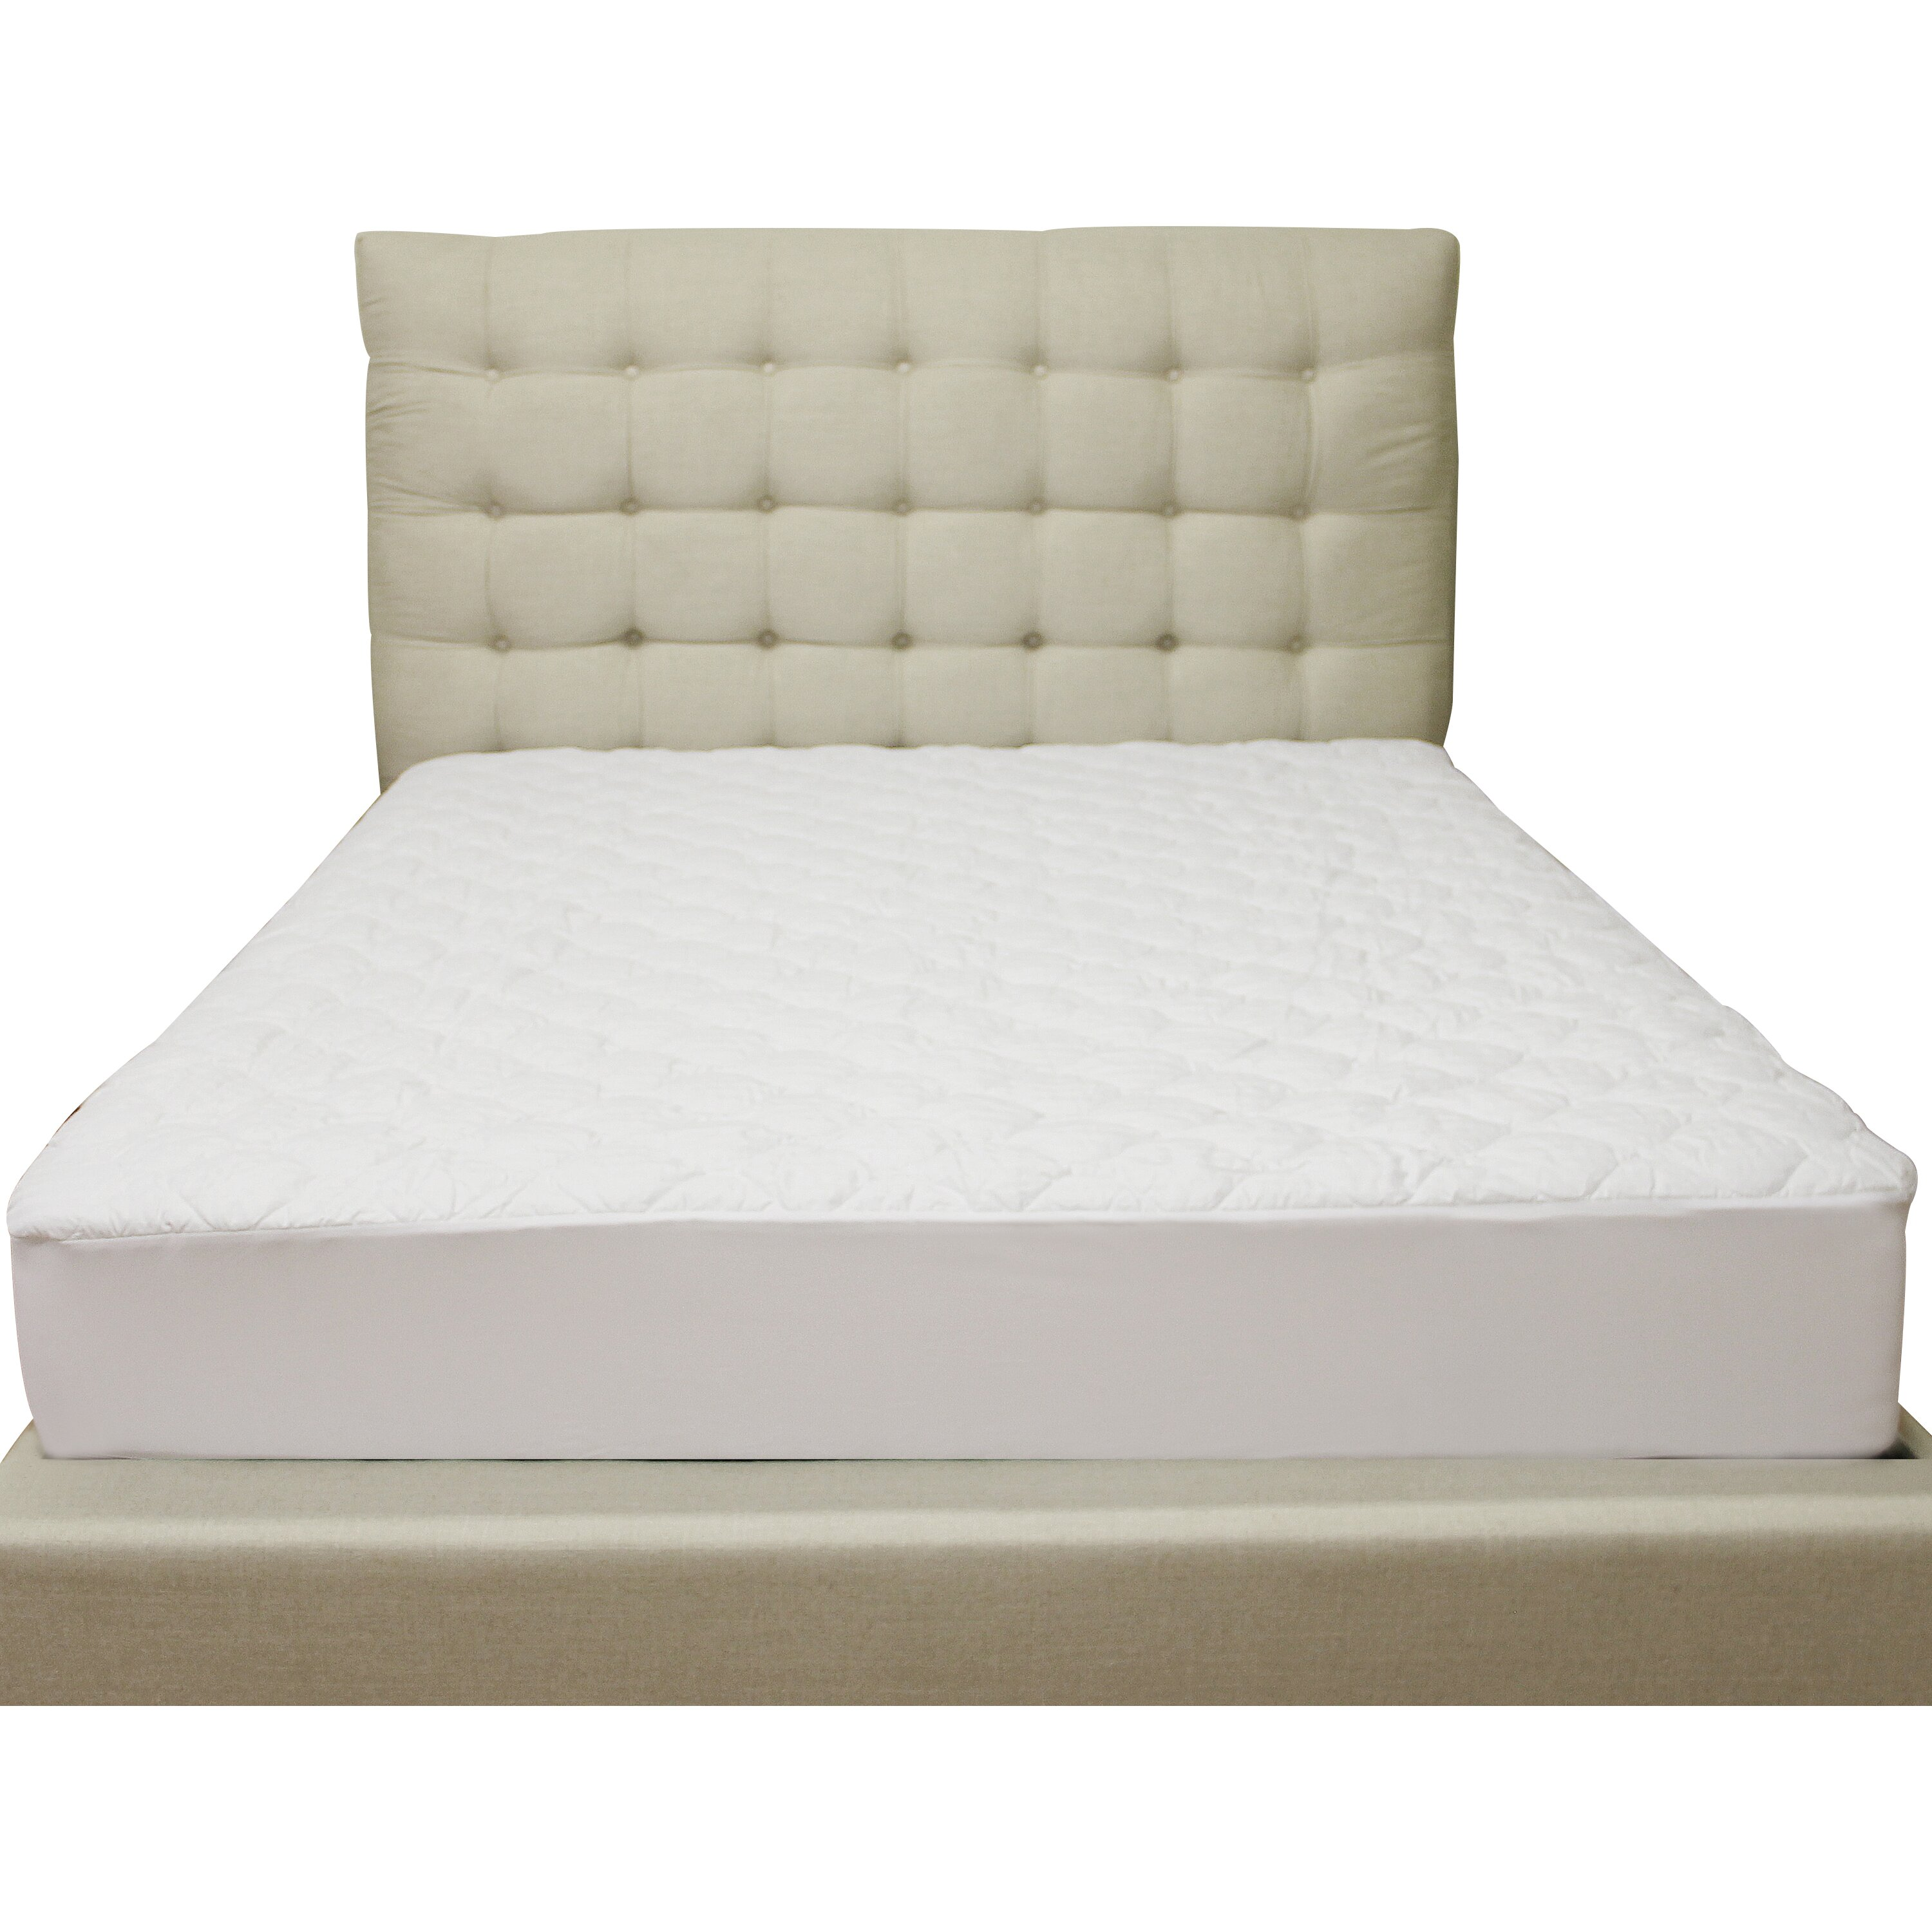 Classic Brands Deluxe Defend A Bed Quilted Hypoallergenic Waterproof Mattress Protector